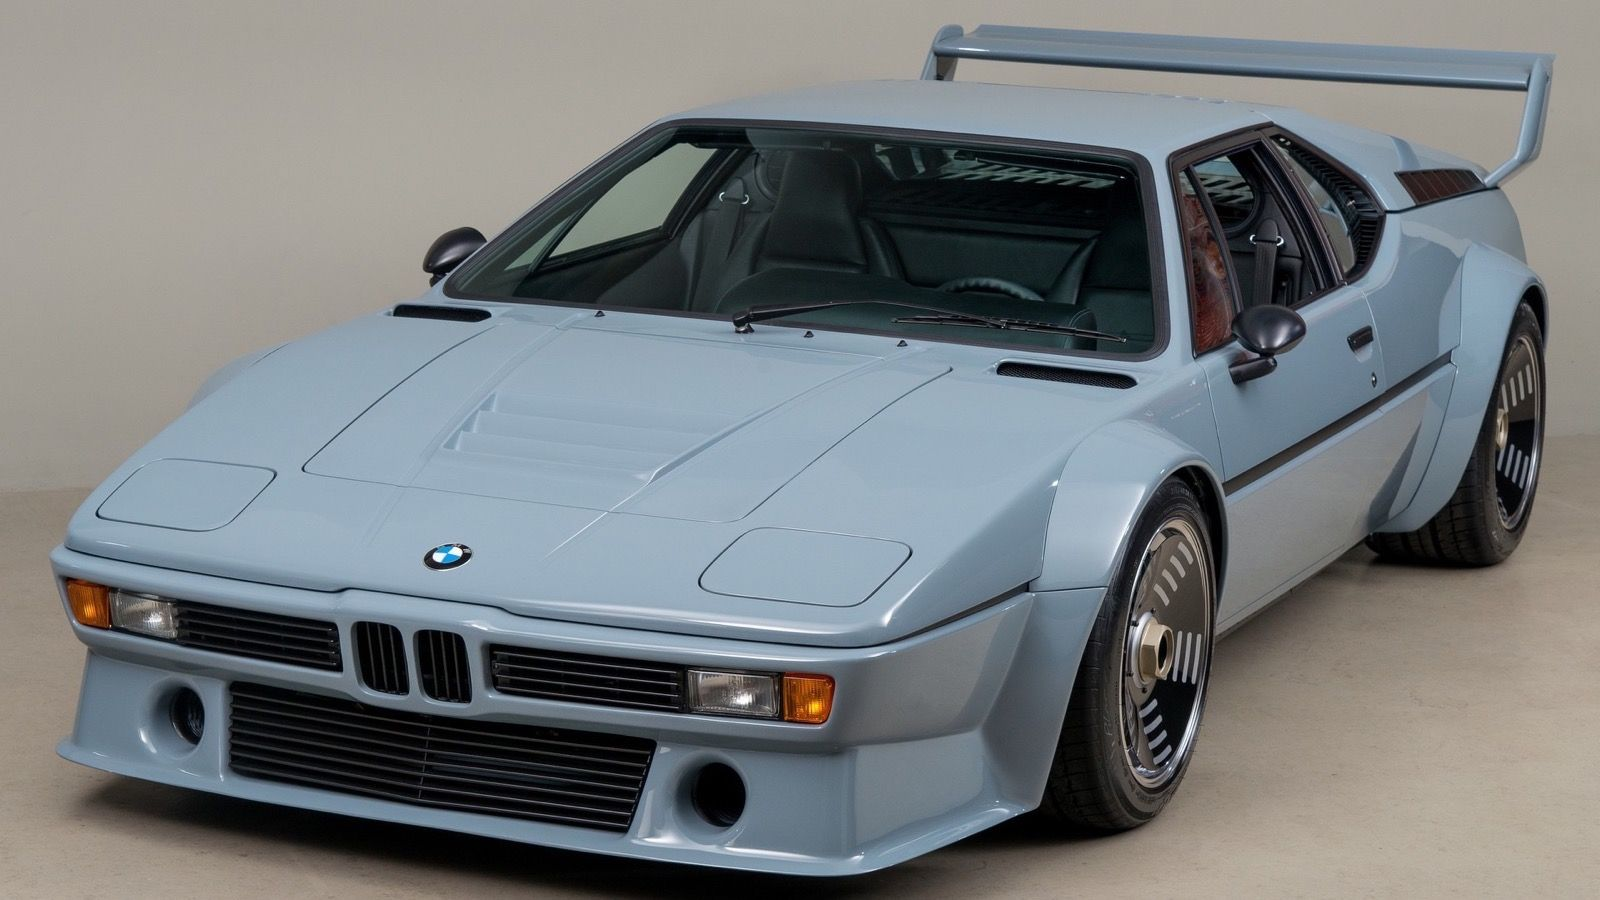 BMW M1 For Sale >> A Stunning Bmw M1 Procar Is Up For Sale Bmw M1 Bmw Bmw